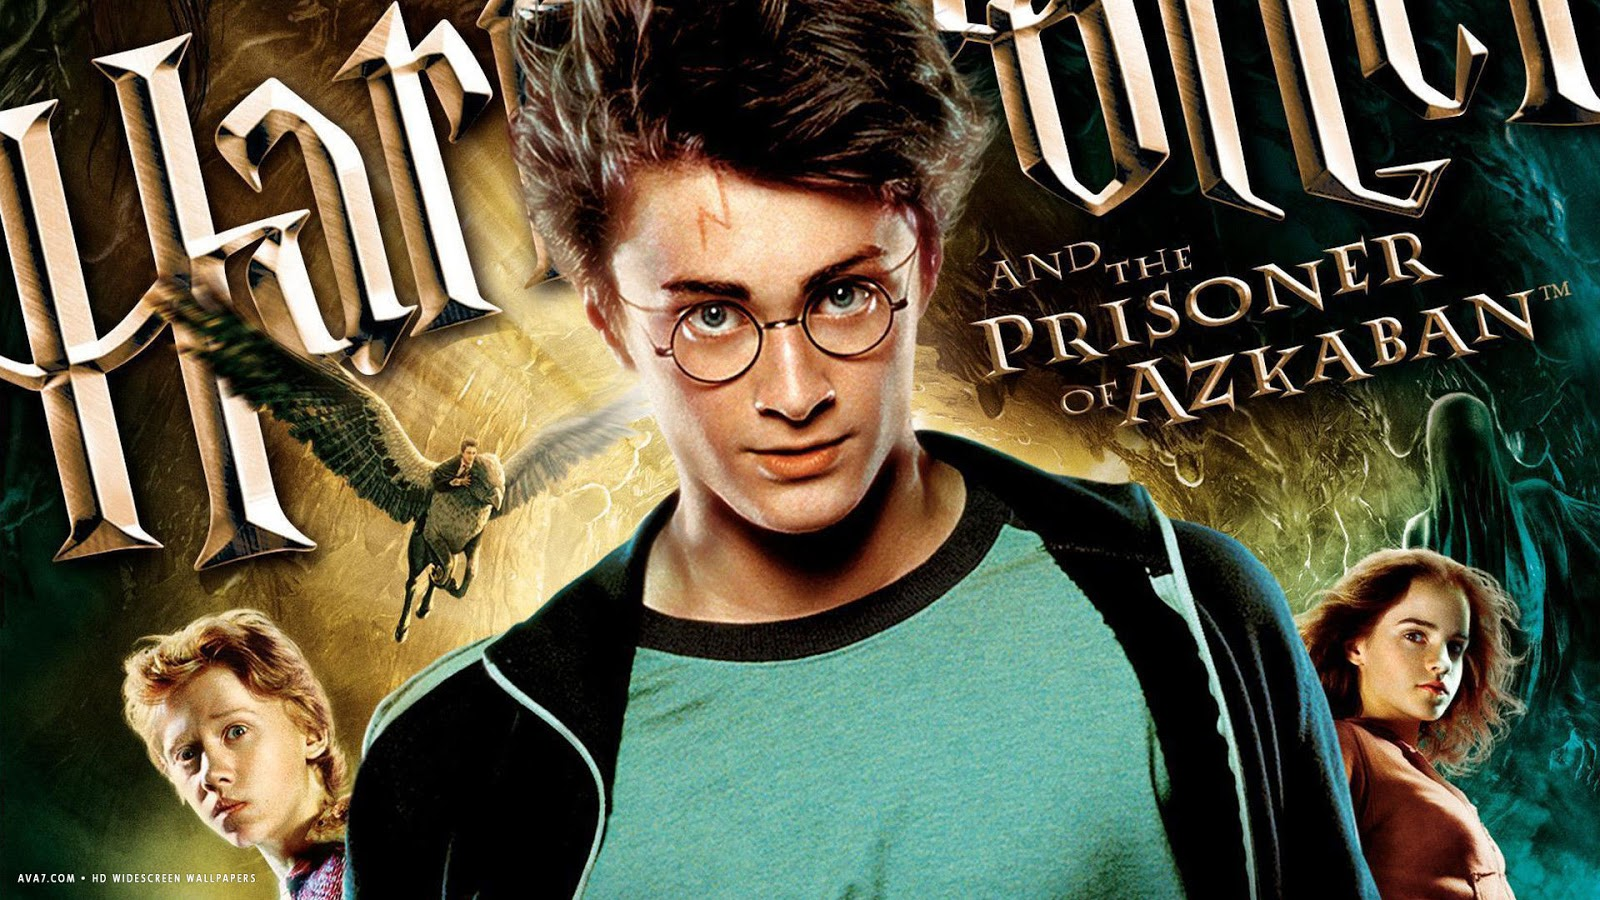 HARRY POTTER AND THE PRISONER OF AZKABAN  TAMIL DUBBED HD